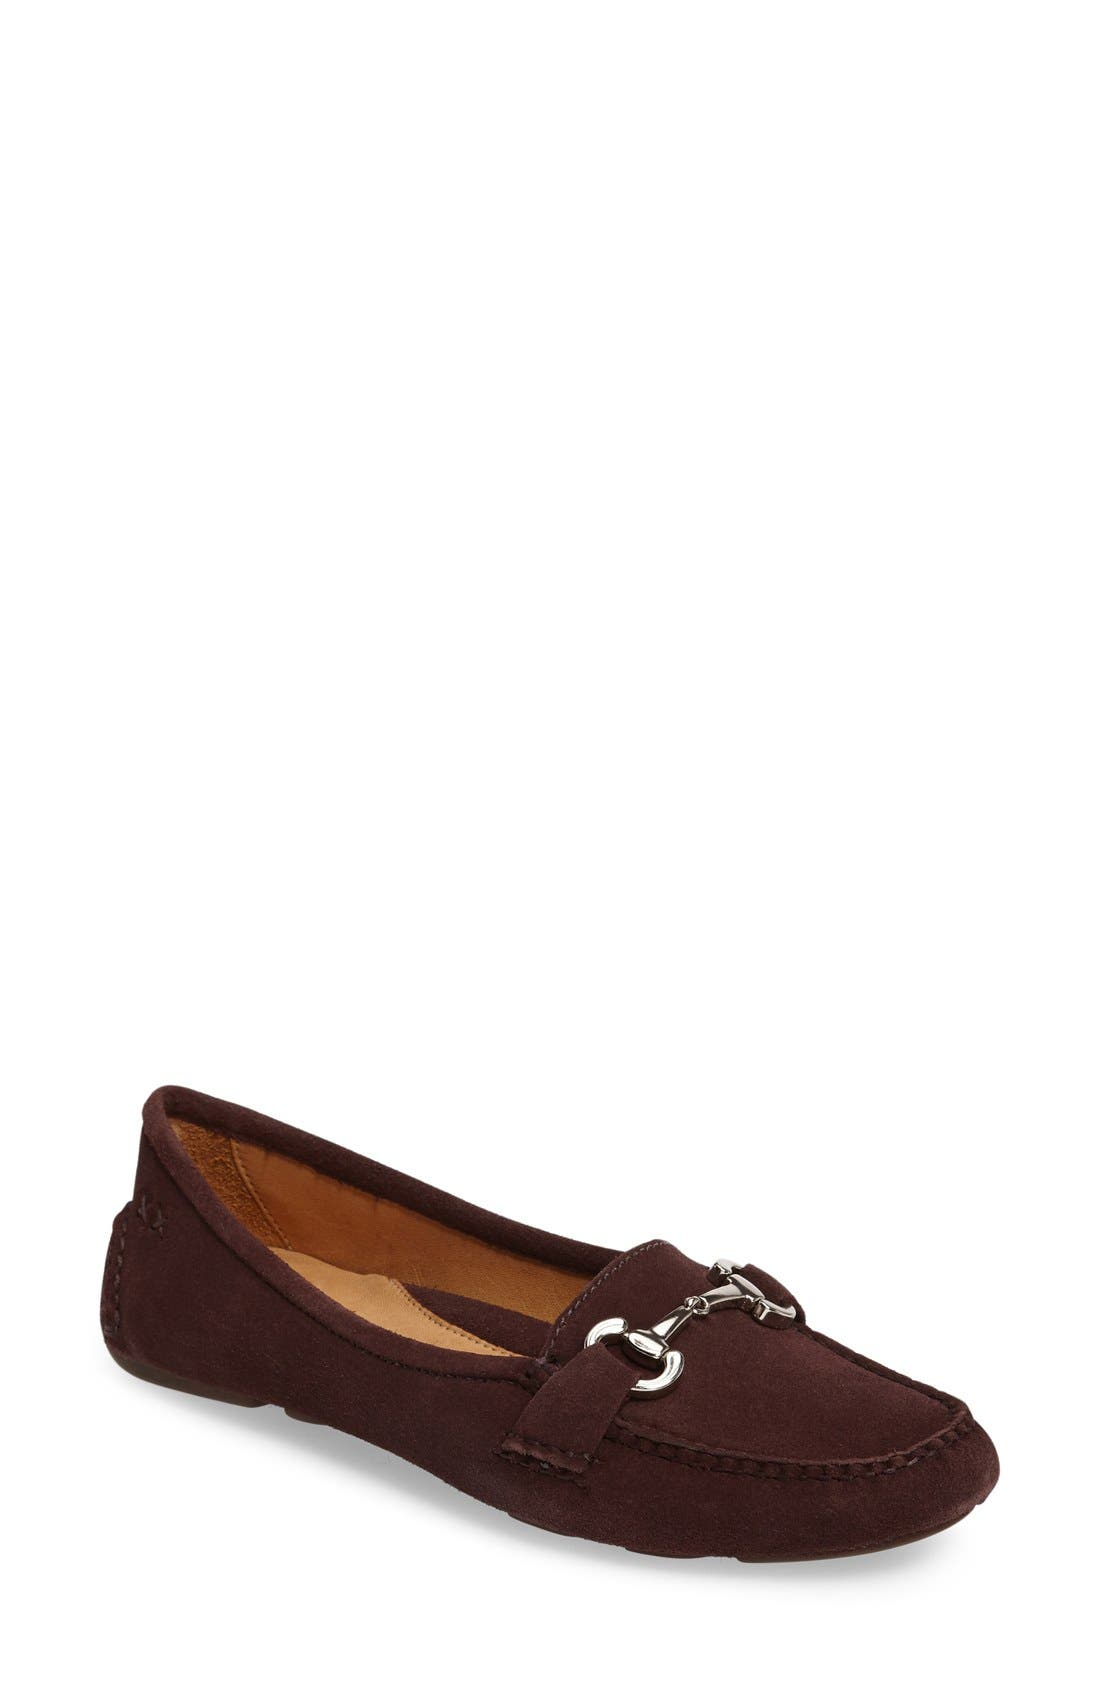 Main Image - patricia green 'Carrie' Loafer (Women)